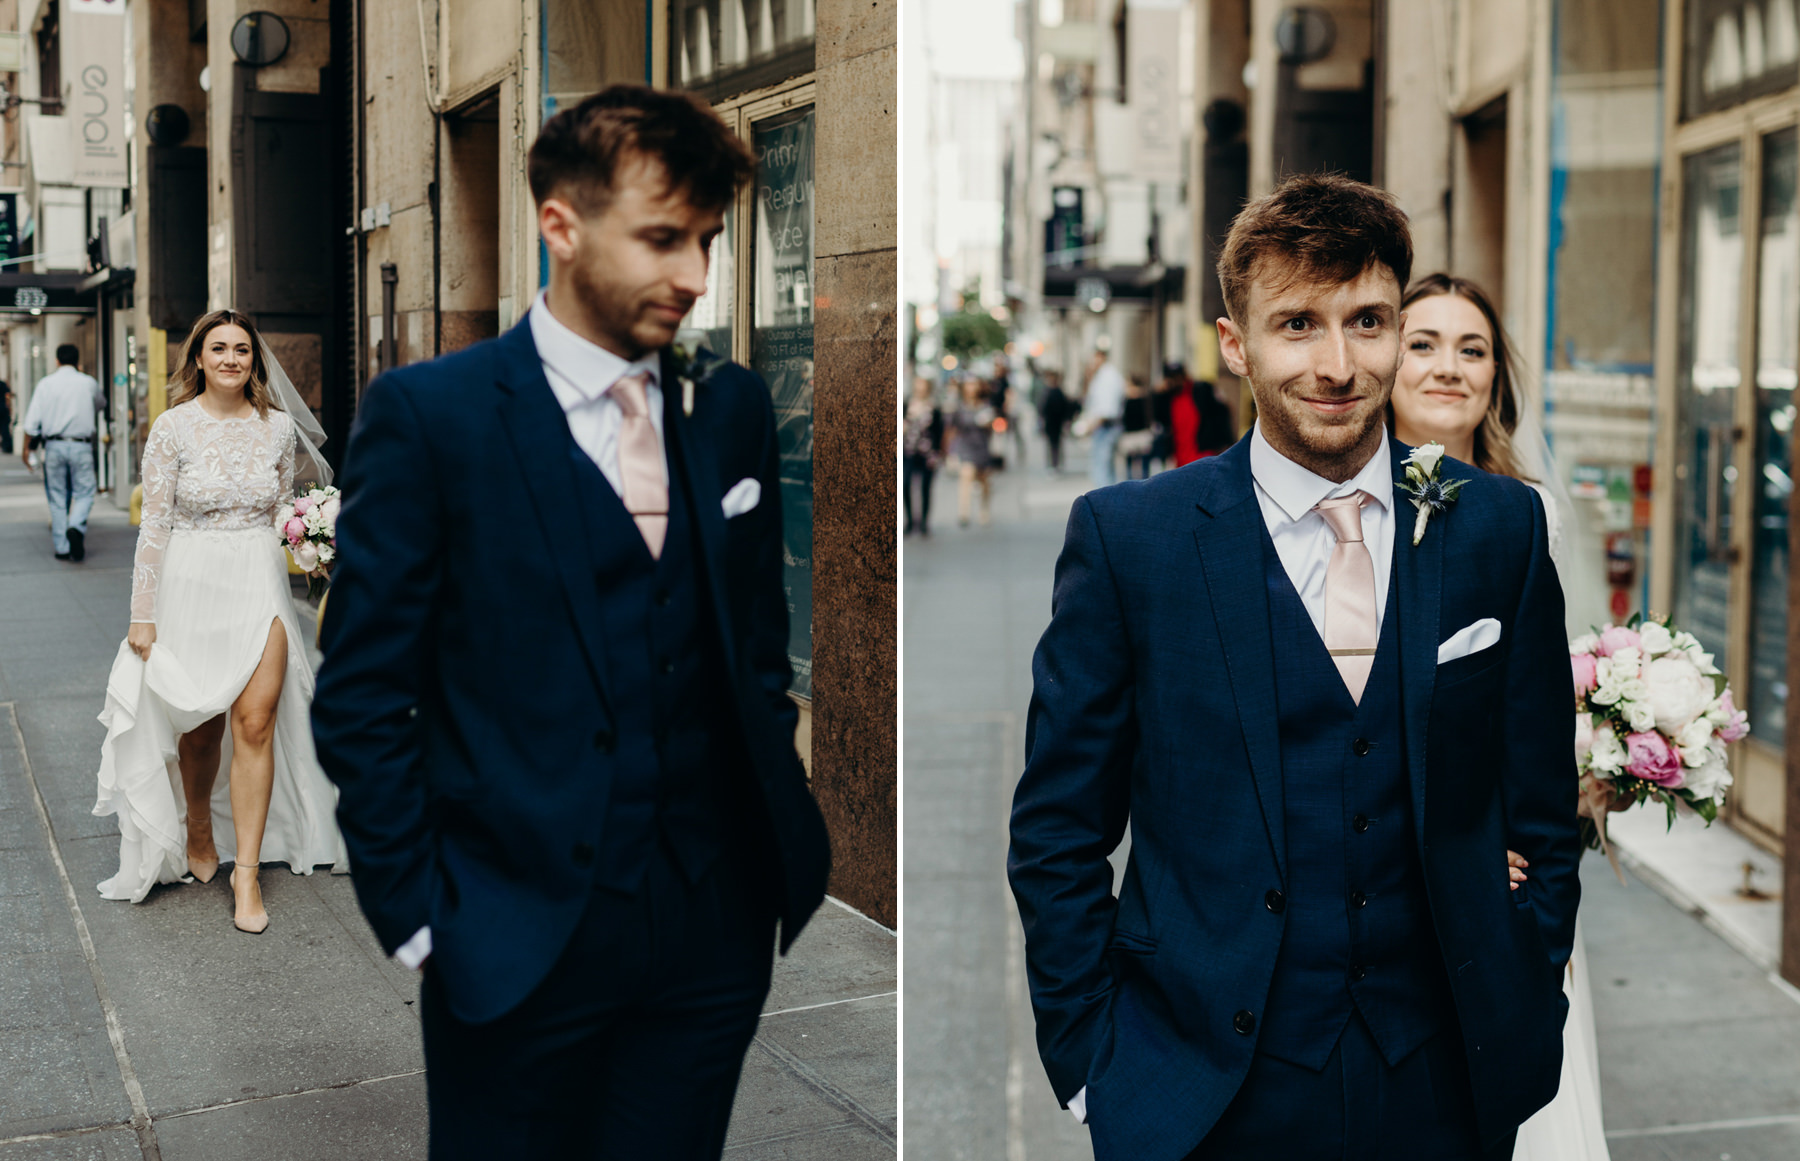 Wedding first look in Manhattan